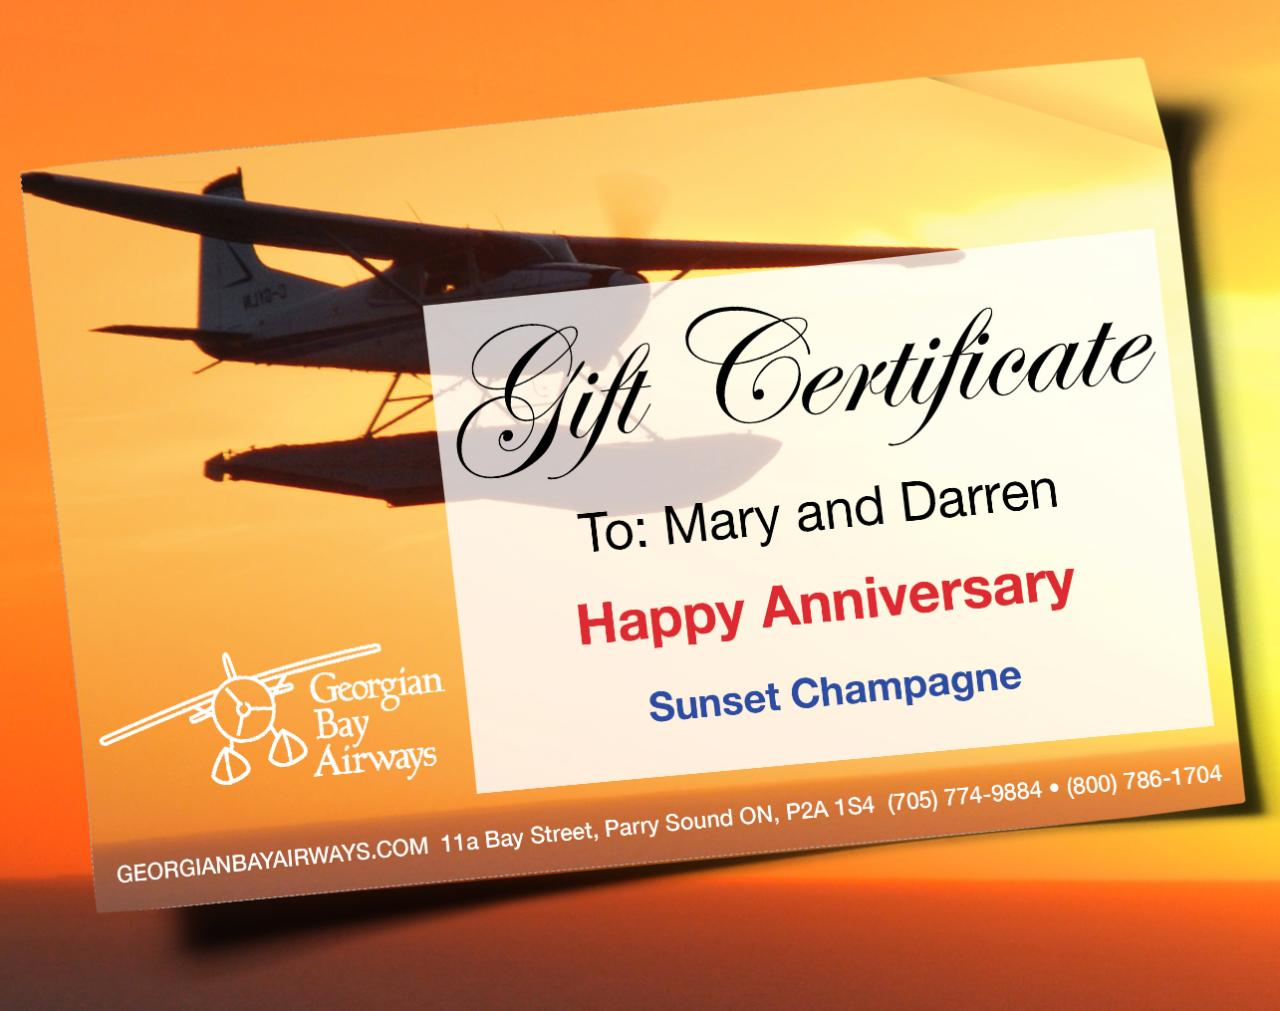 Sunset Champagne - Gift Certificate